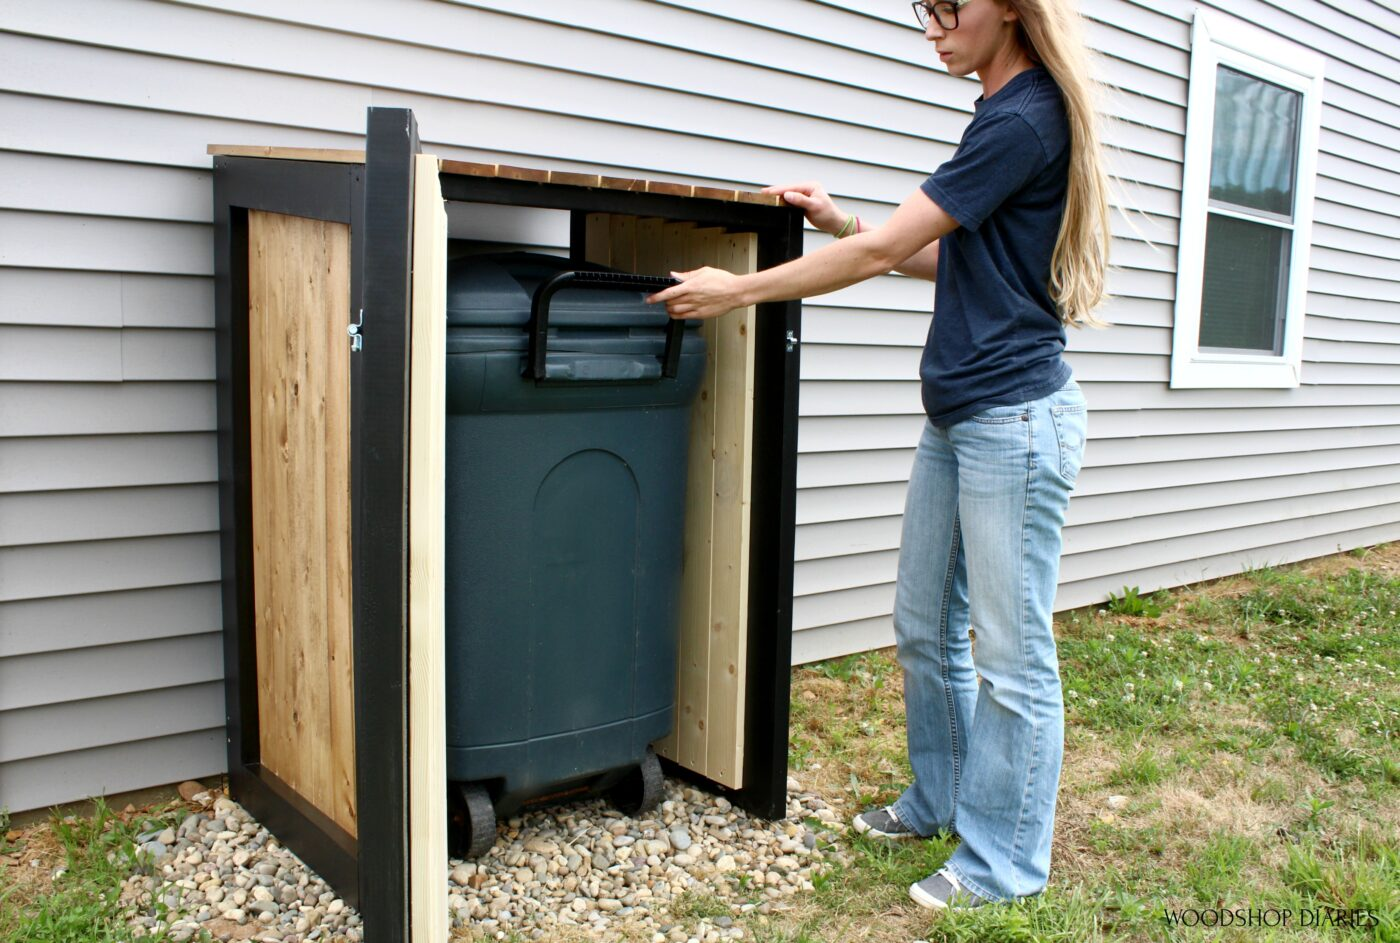 Shara Woodshop Diaries pulling trash can out of trash can cover with door open